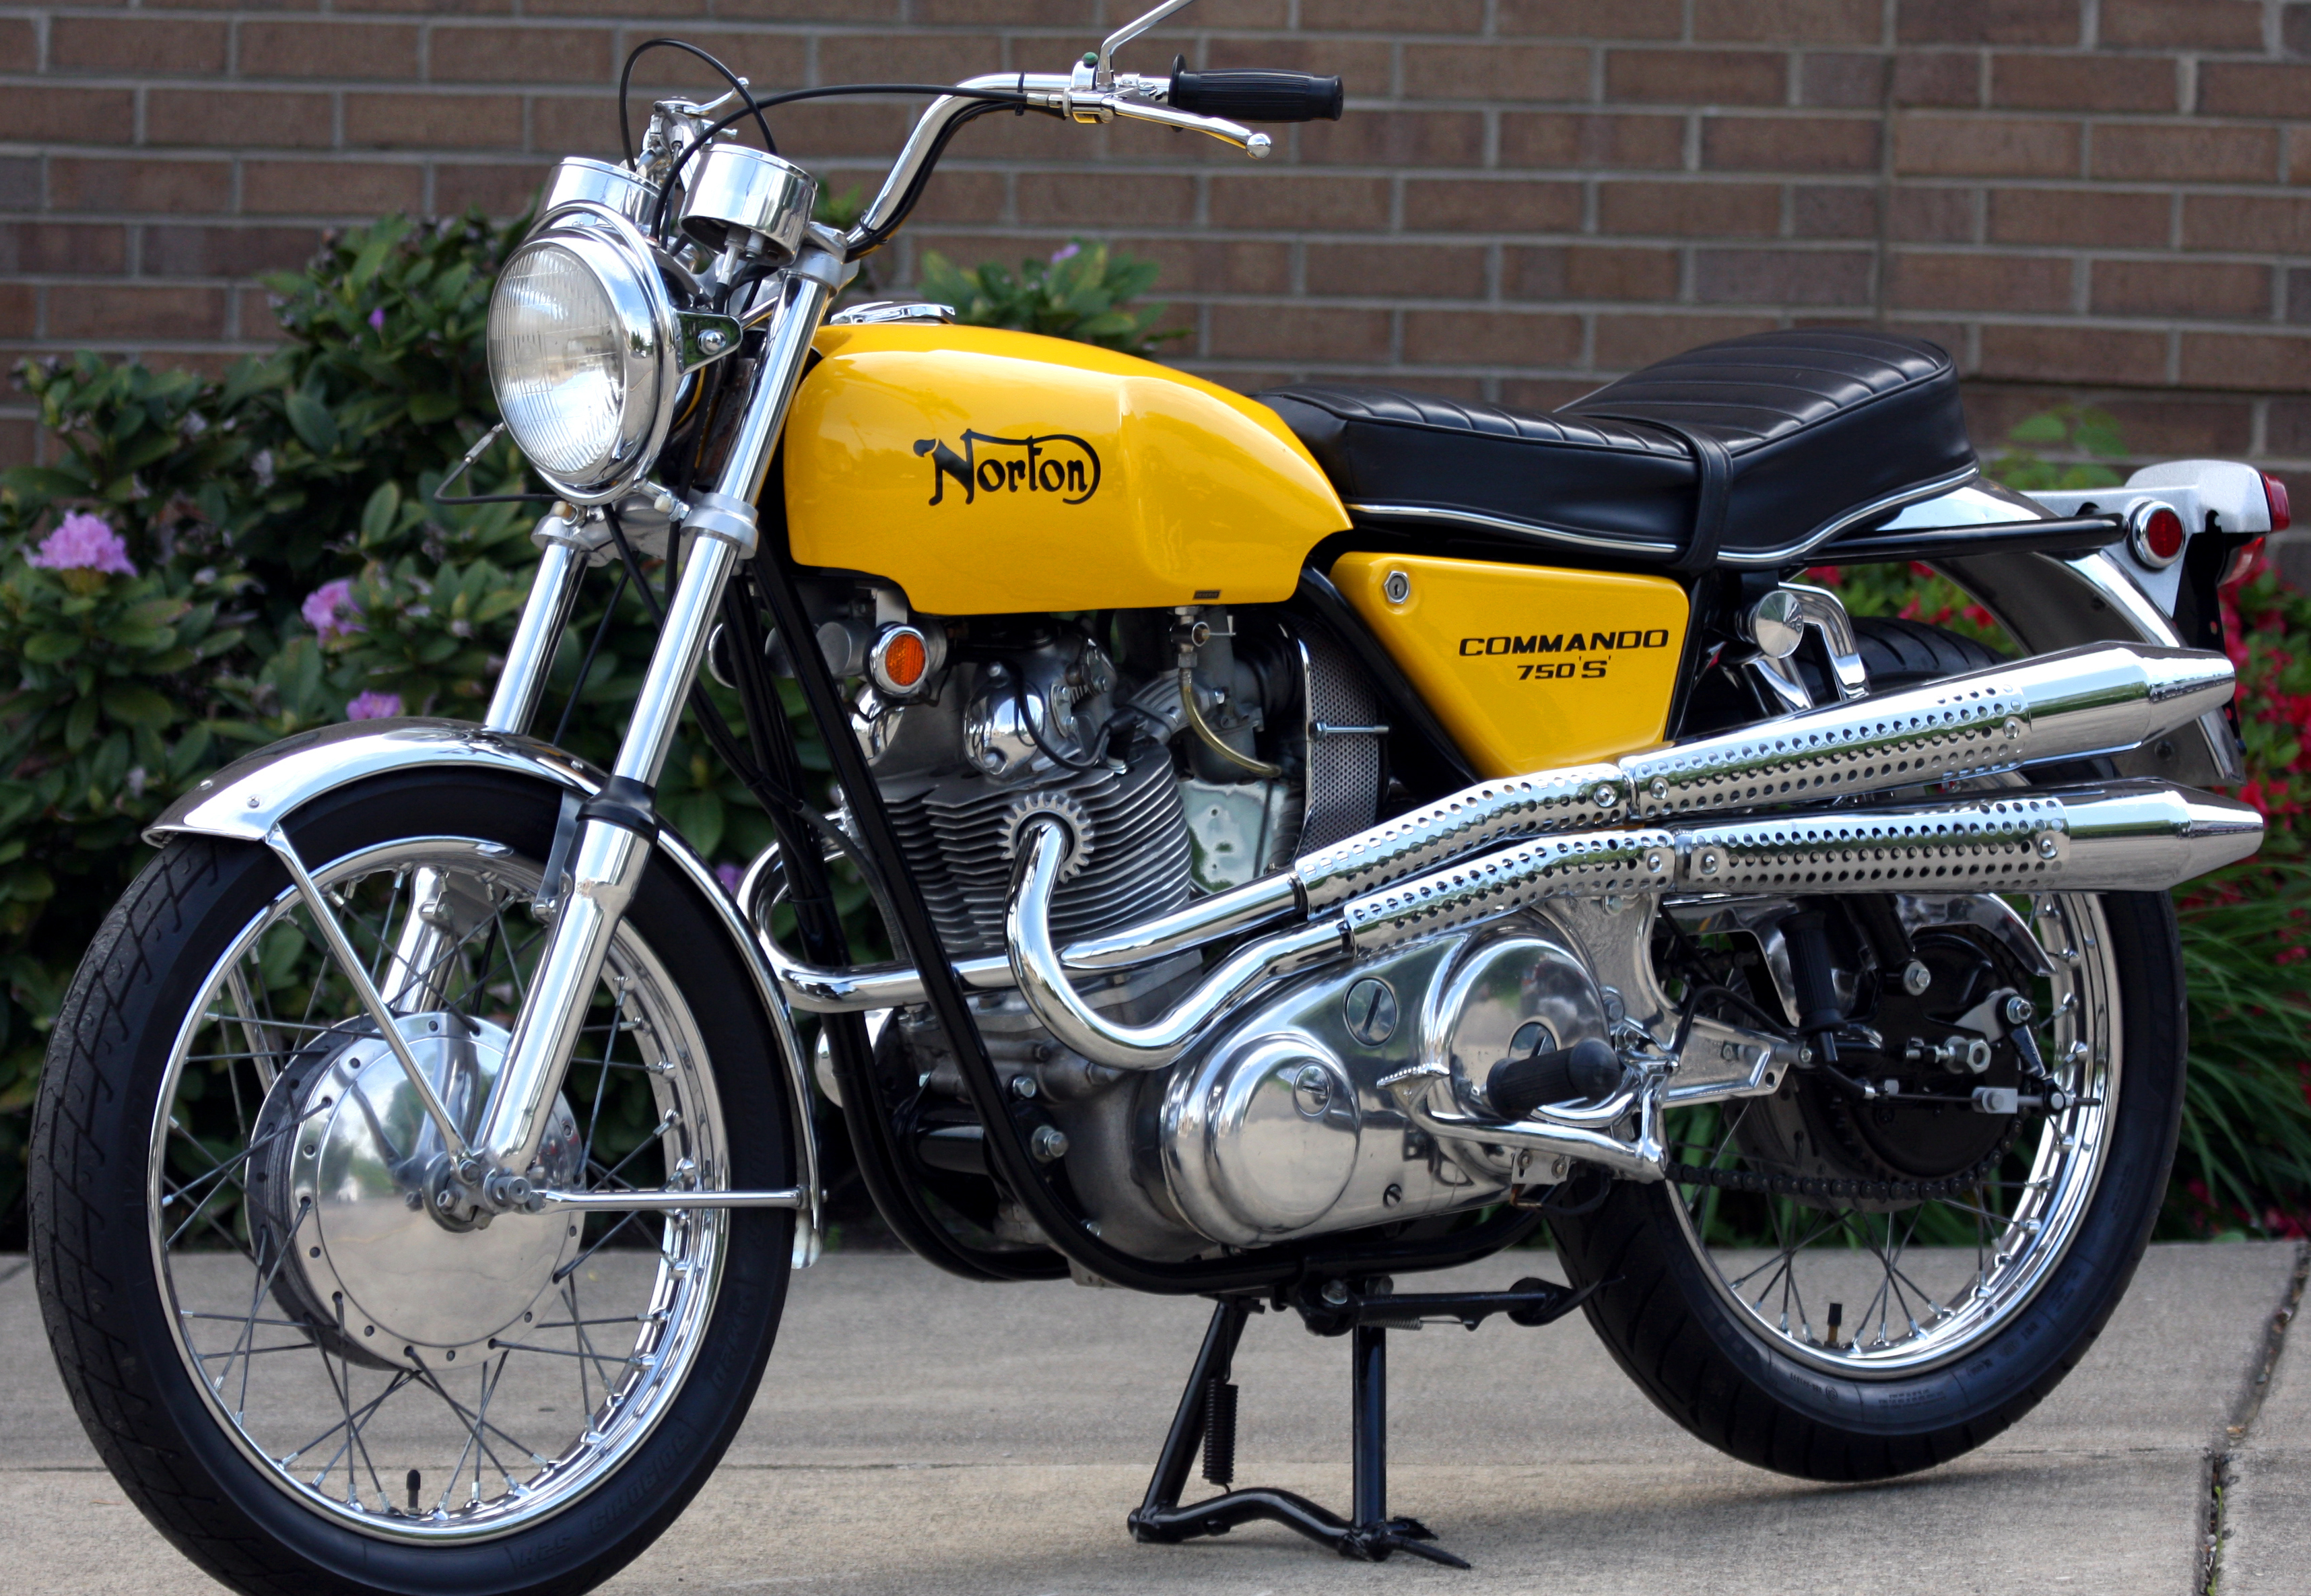 The Norton Commando 750 S Inspired By Flat Track And Targeting